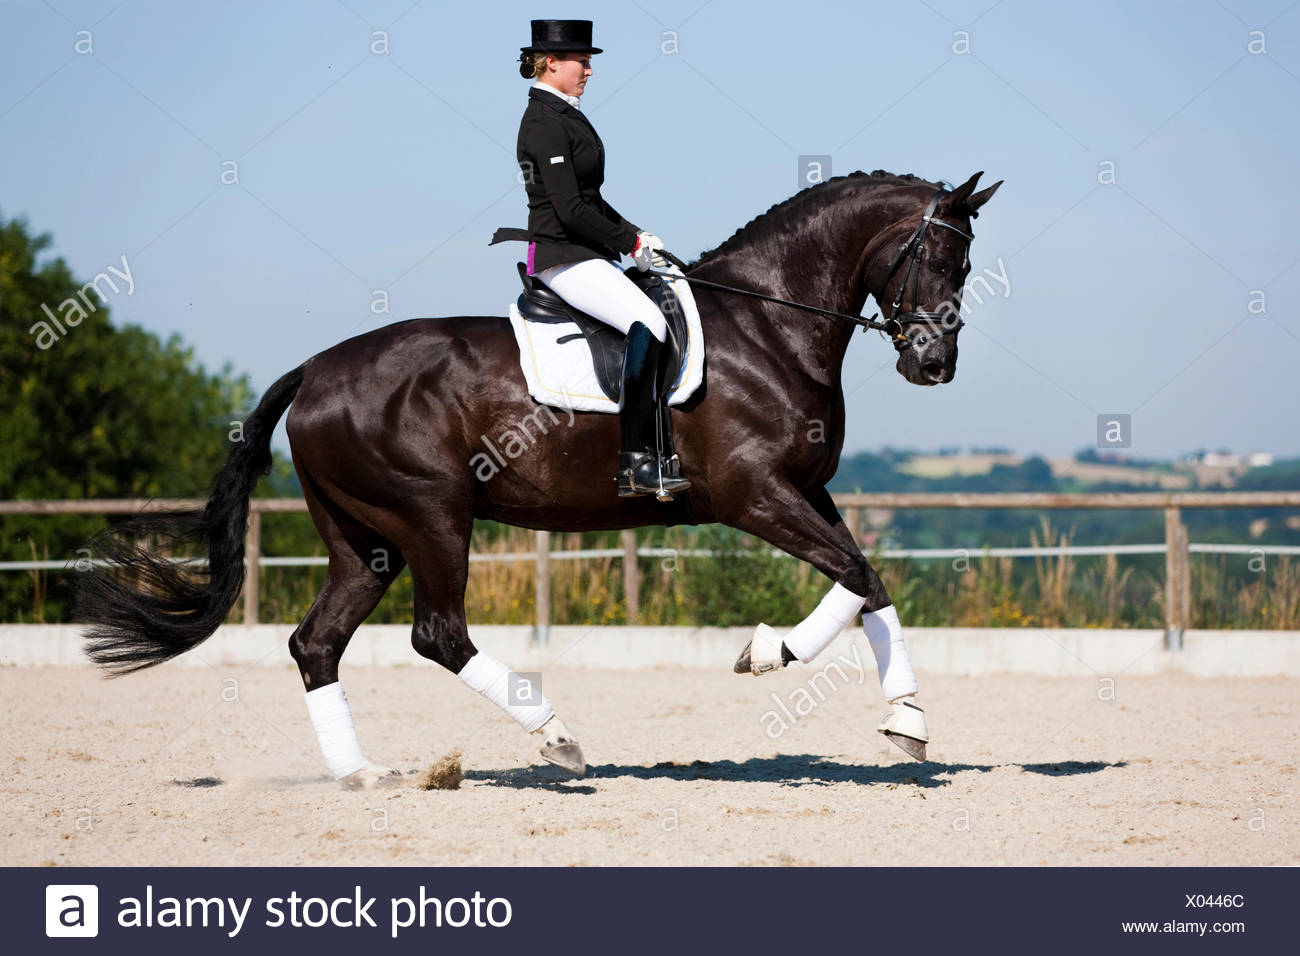 Riding Fotos Horse Dress Stock Alamy Immaginiamp; vOyN0w8nm